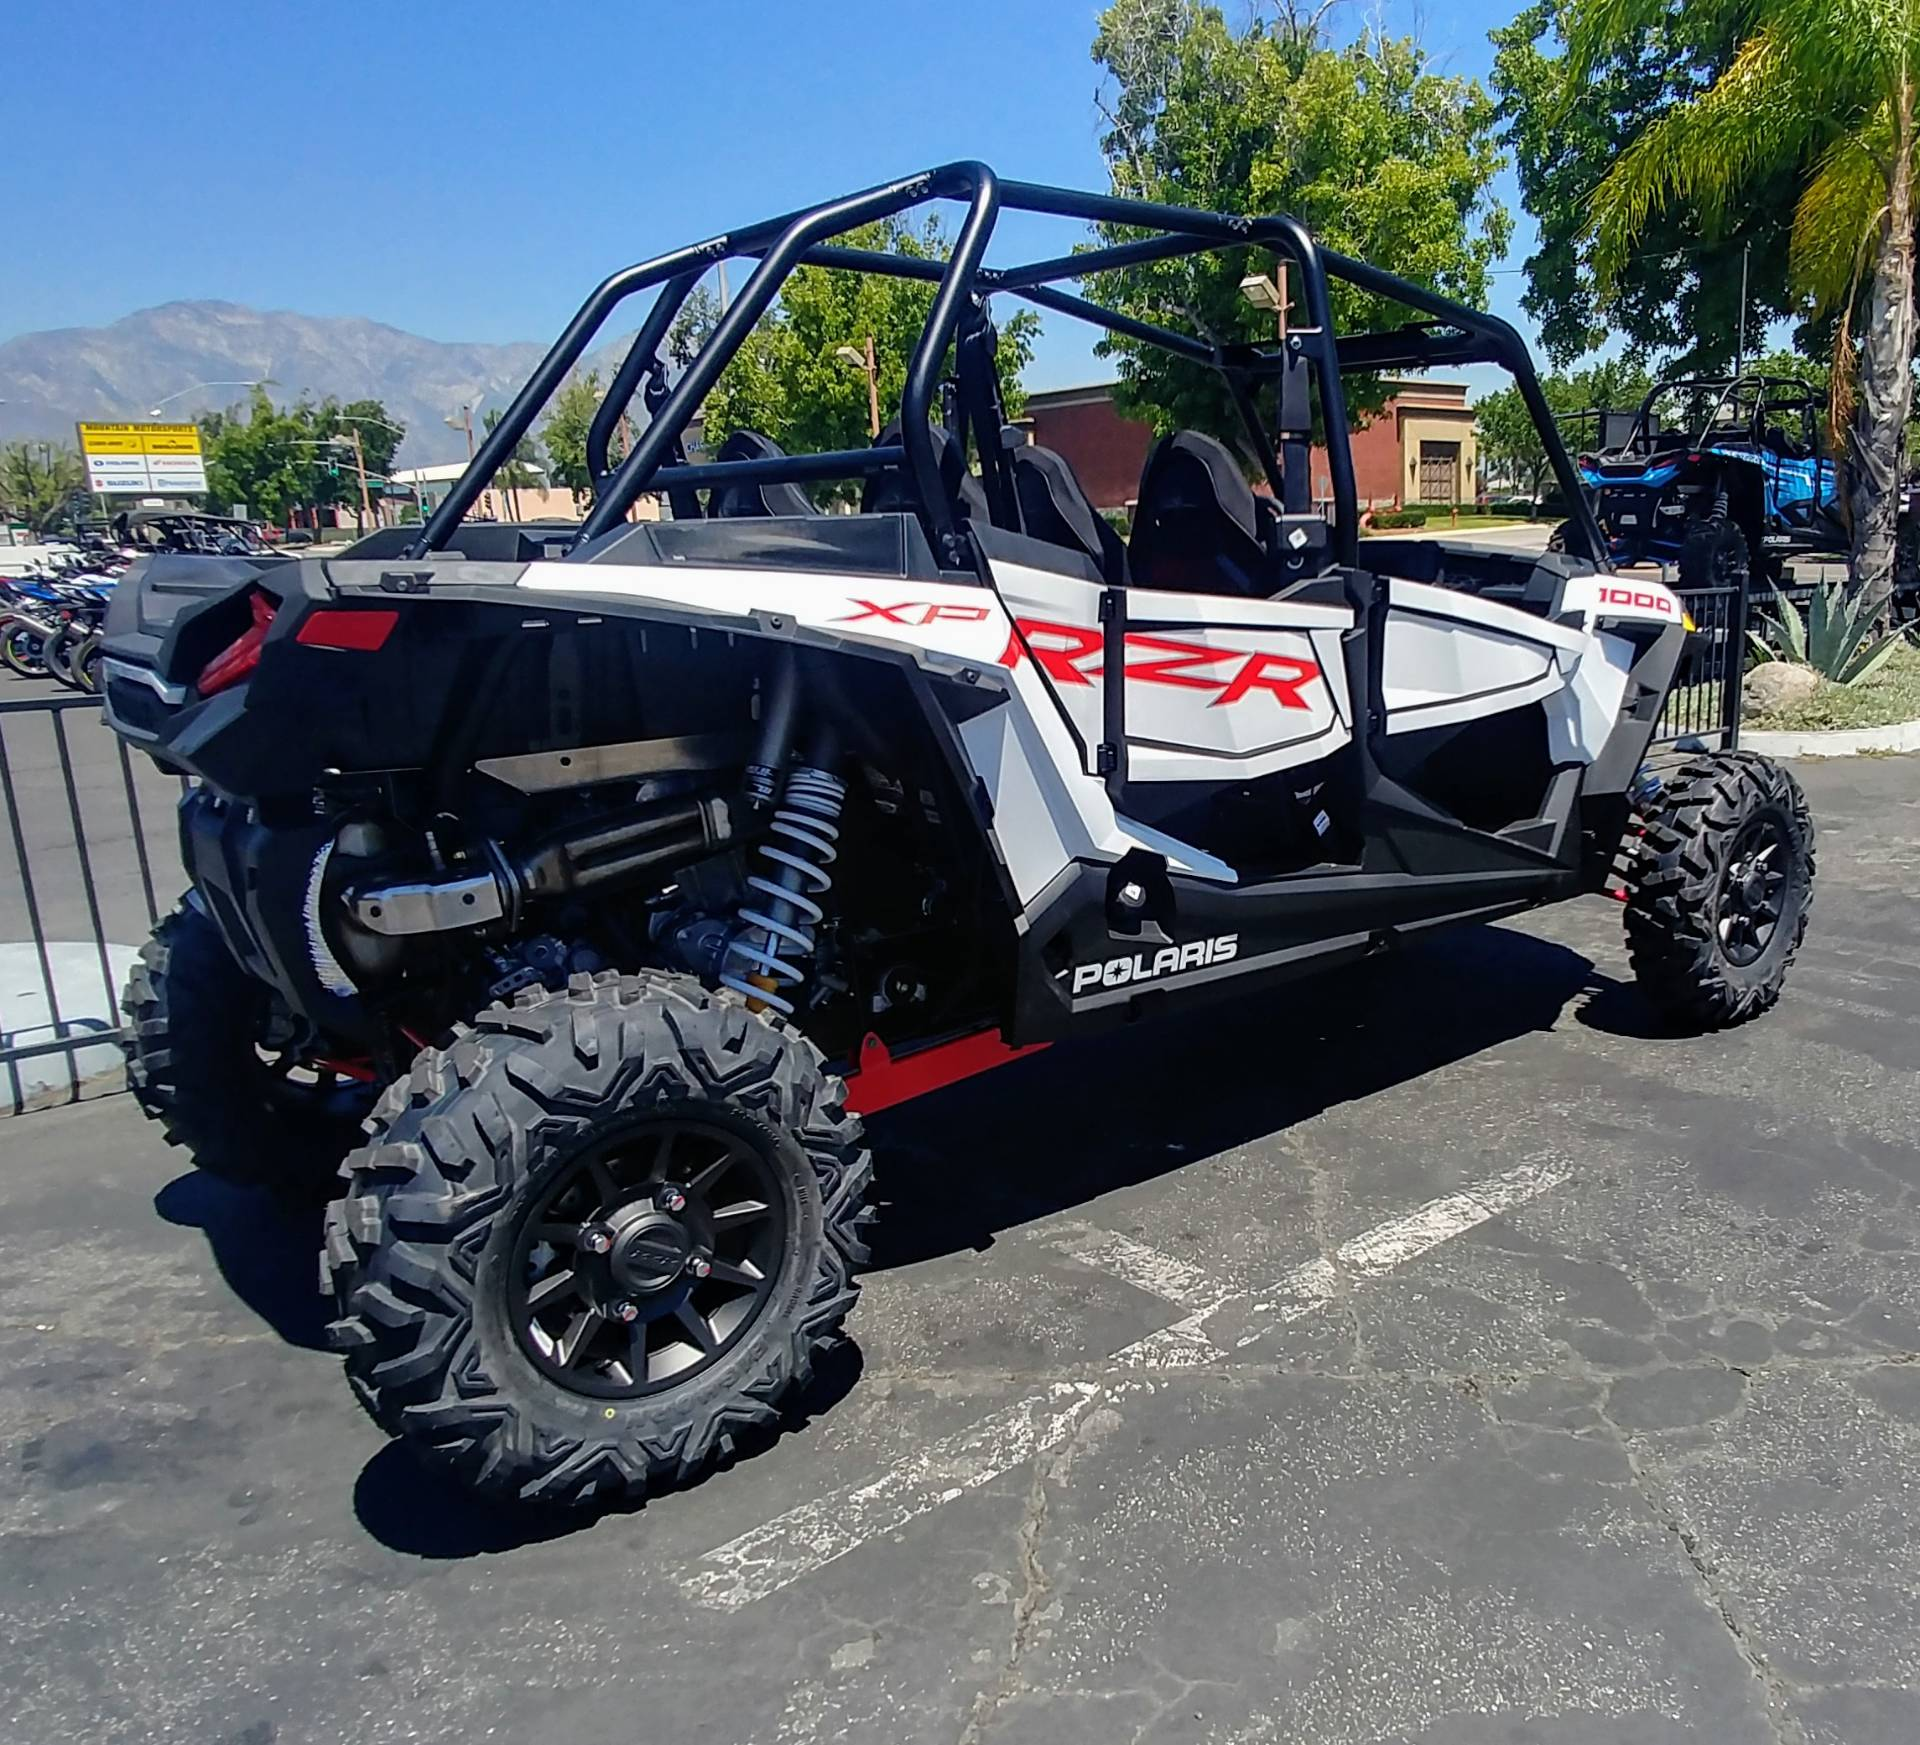 2020 Polaris RZR XP 4 1000 in Ontario, California - Photo 4